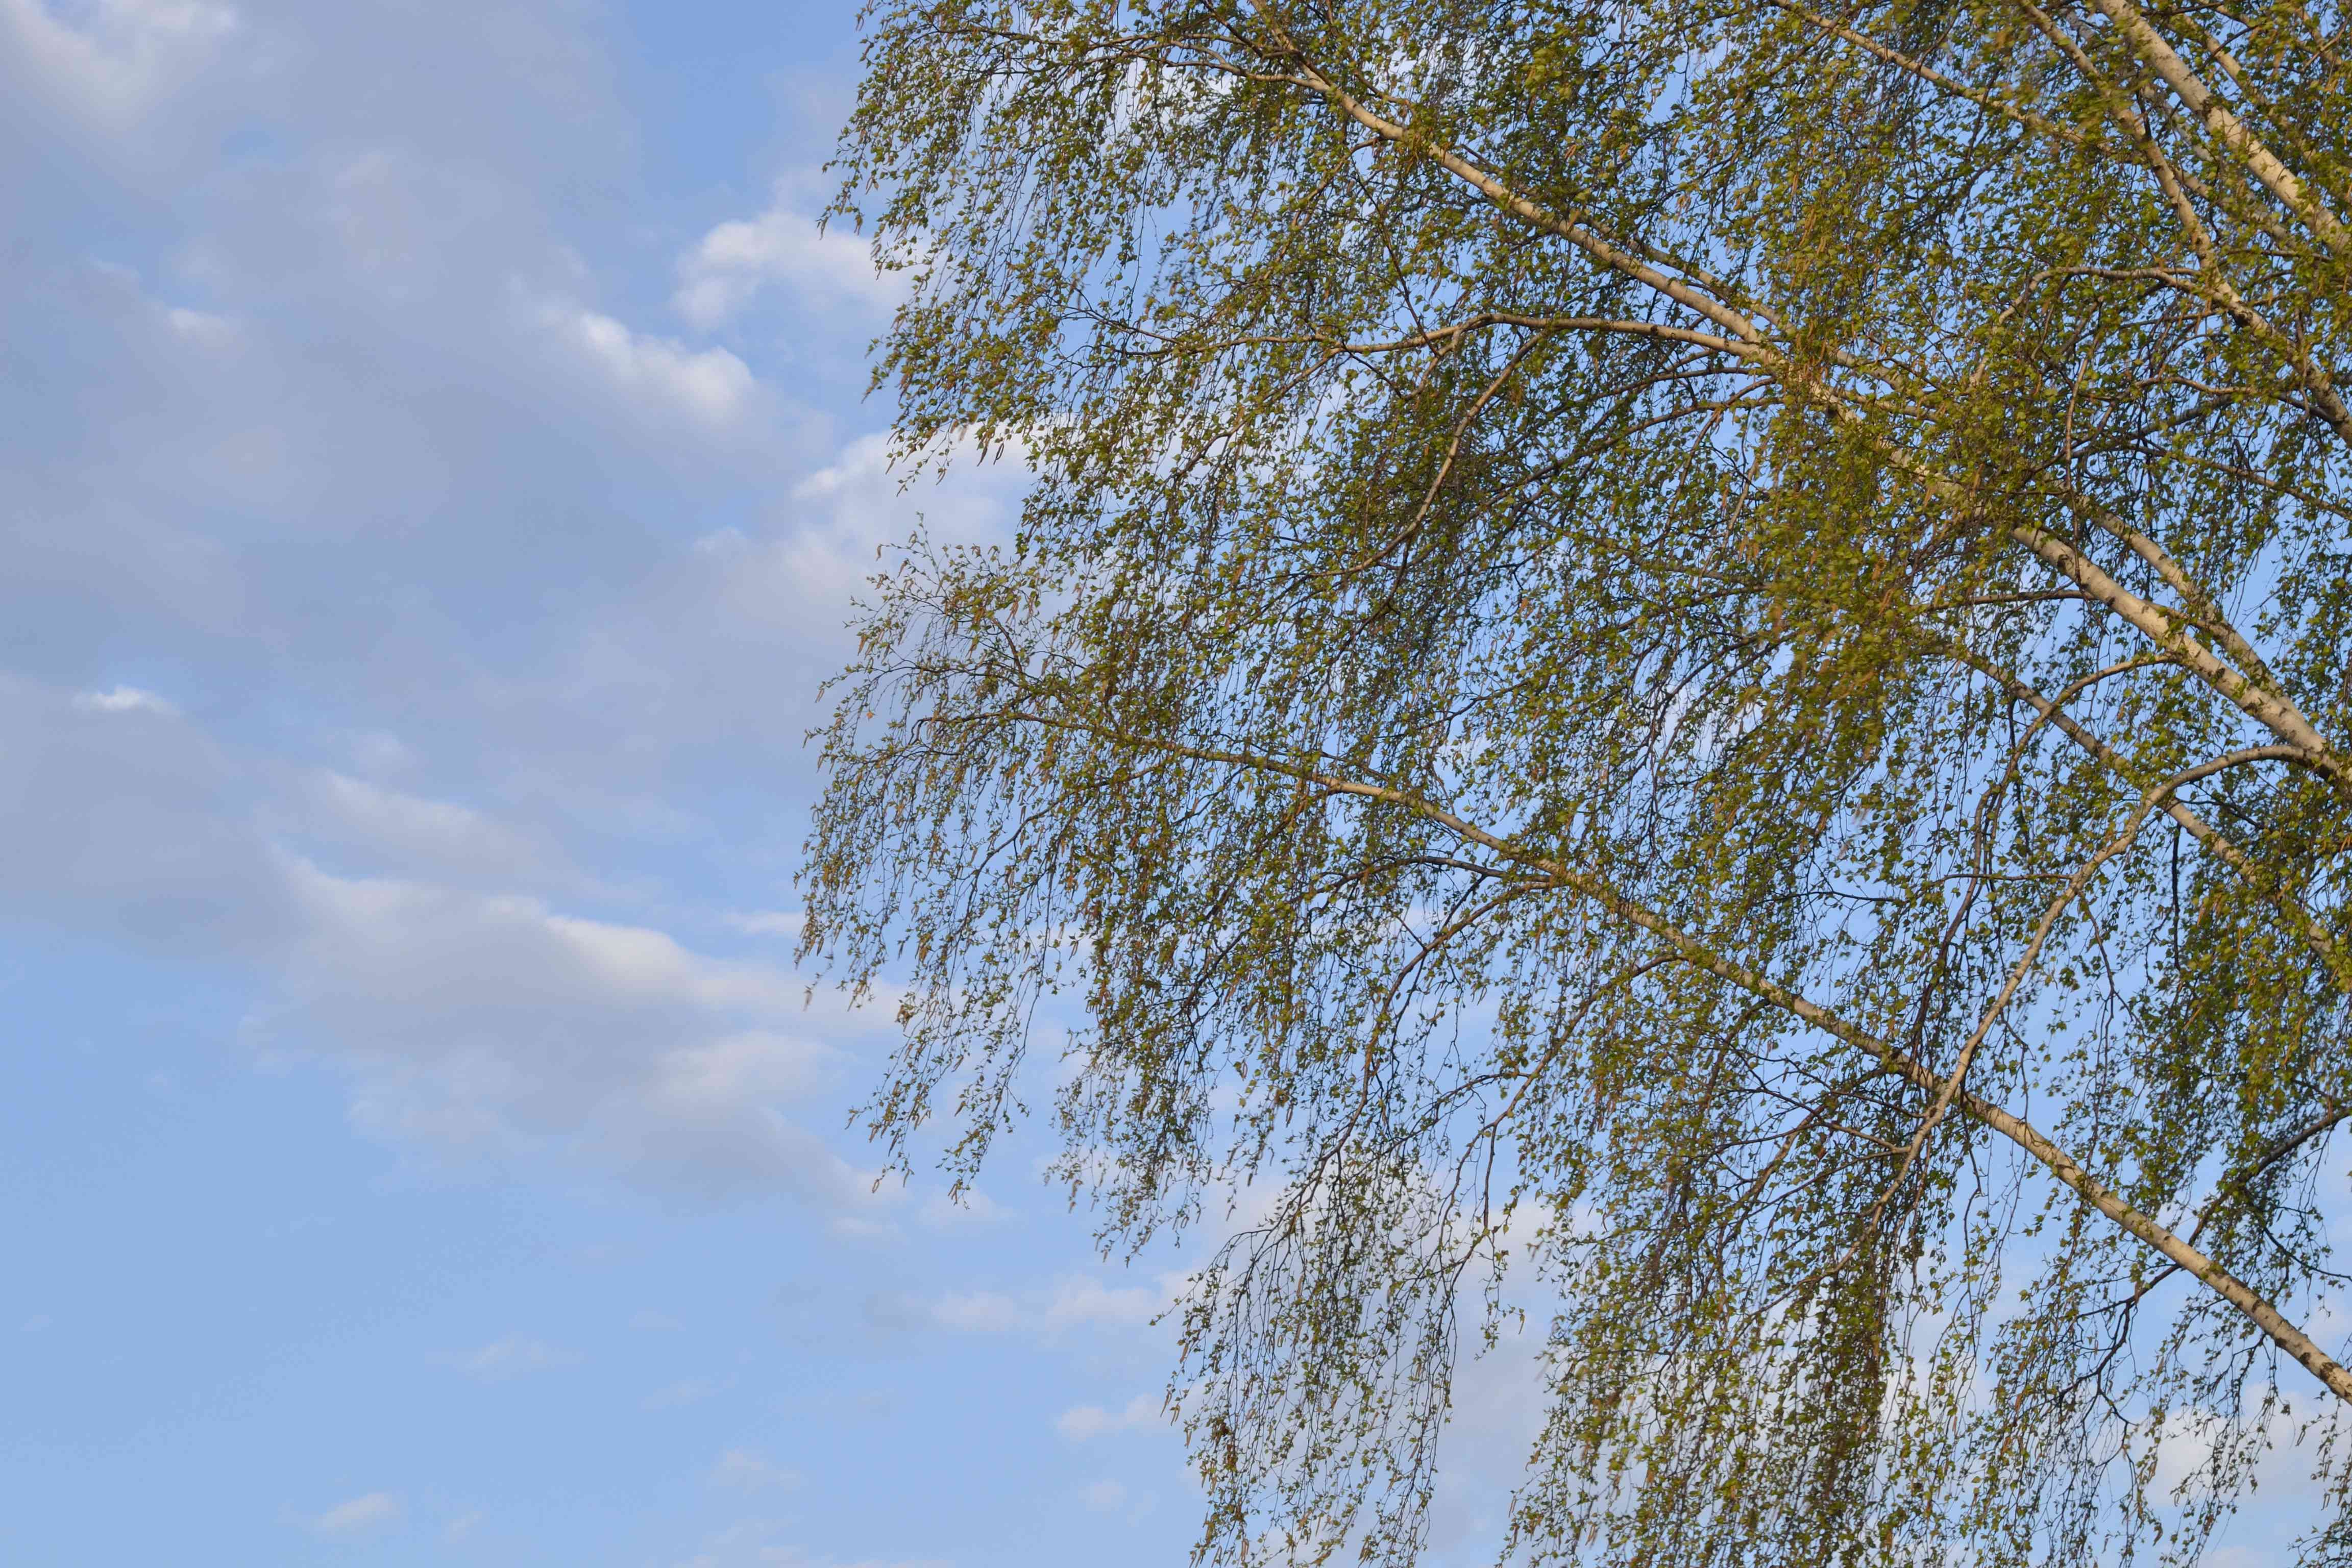 Thin birch branches with small green leaves against the cloudy sky.